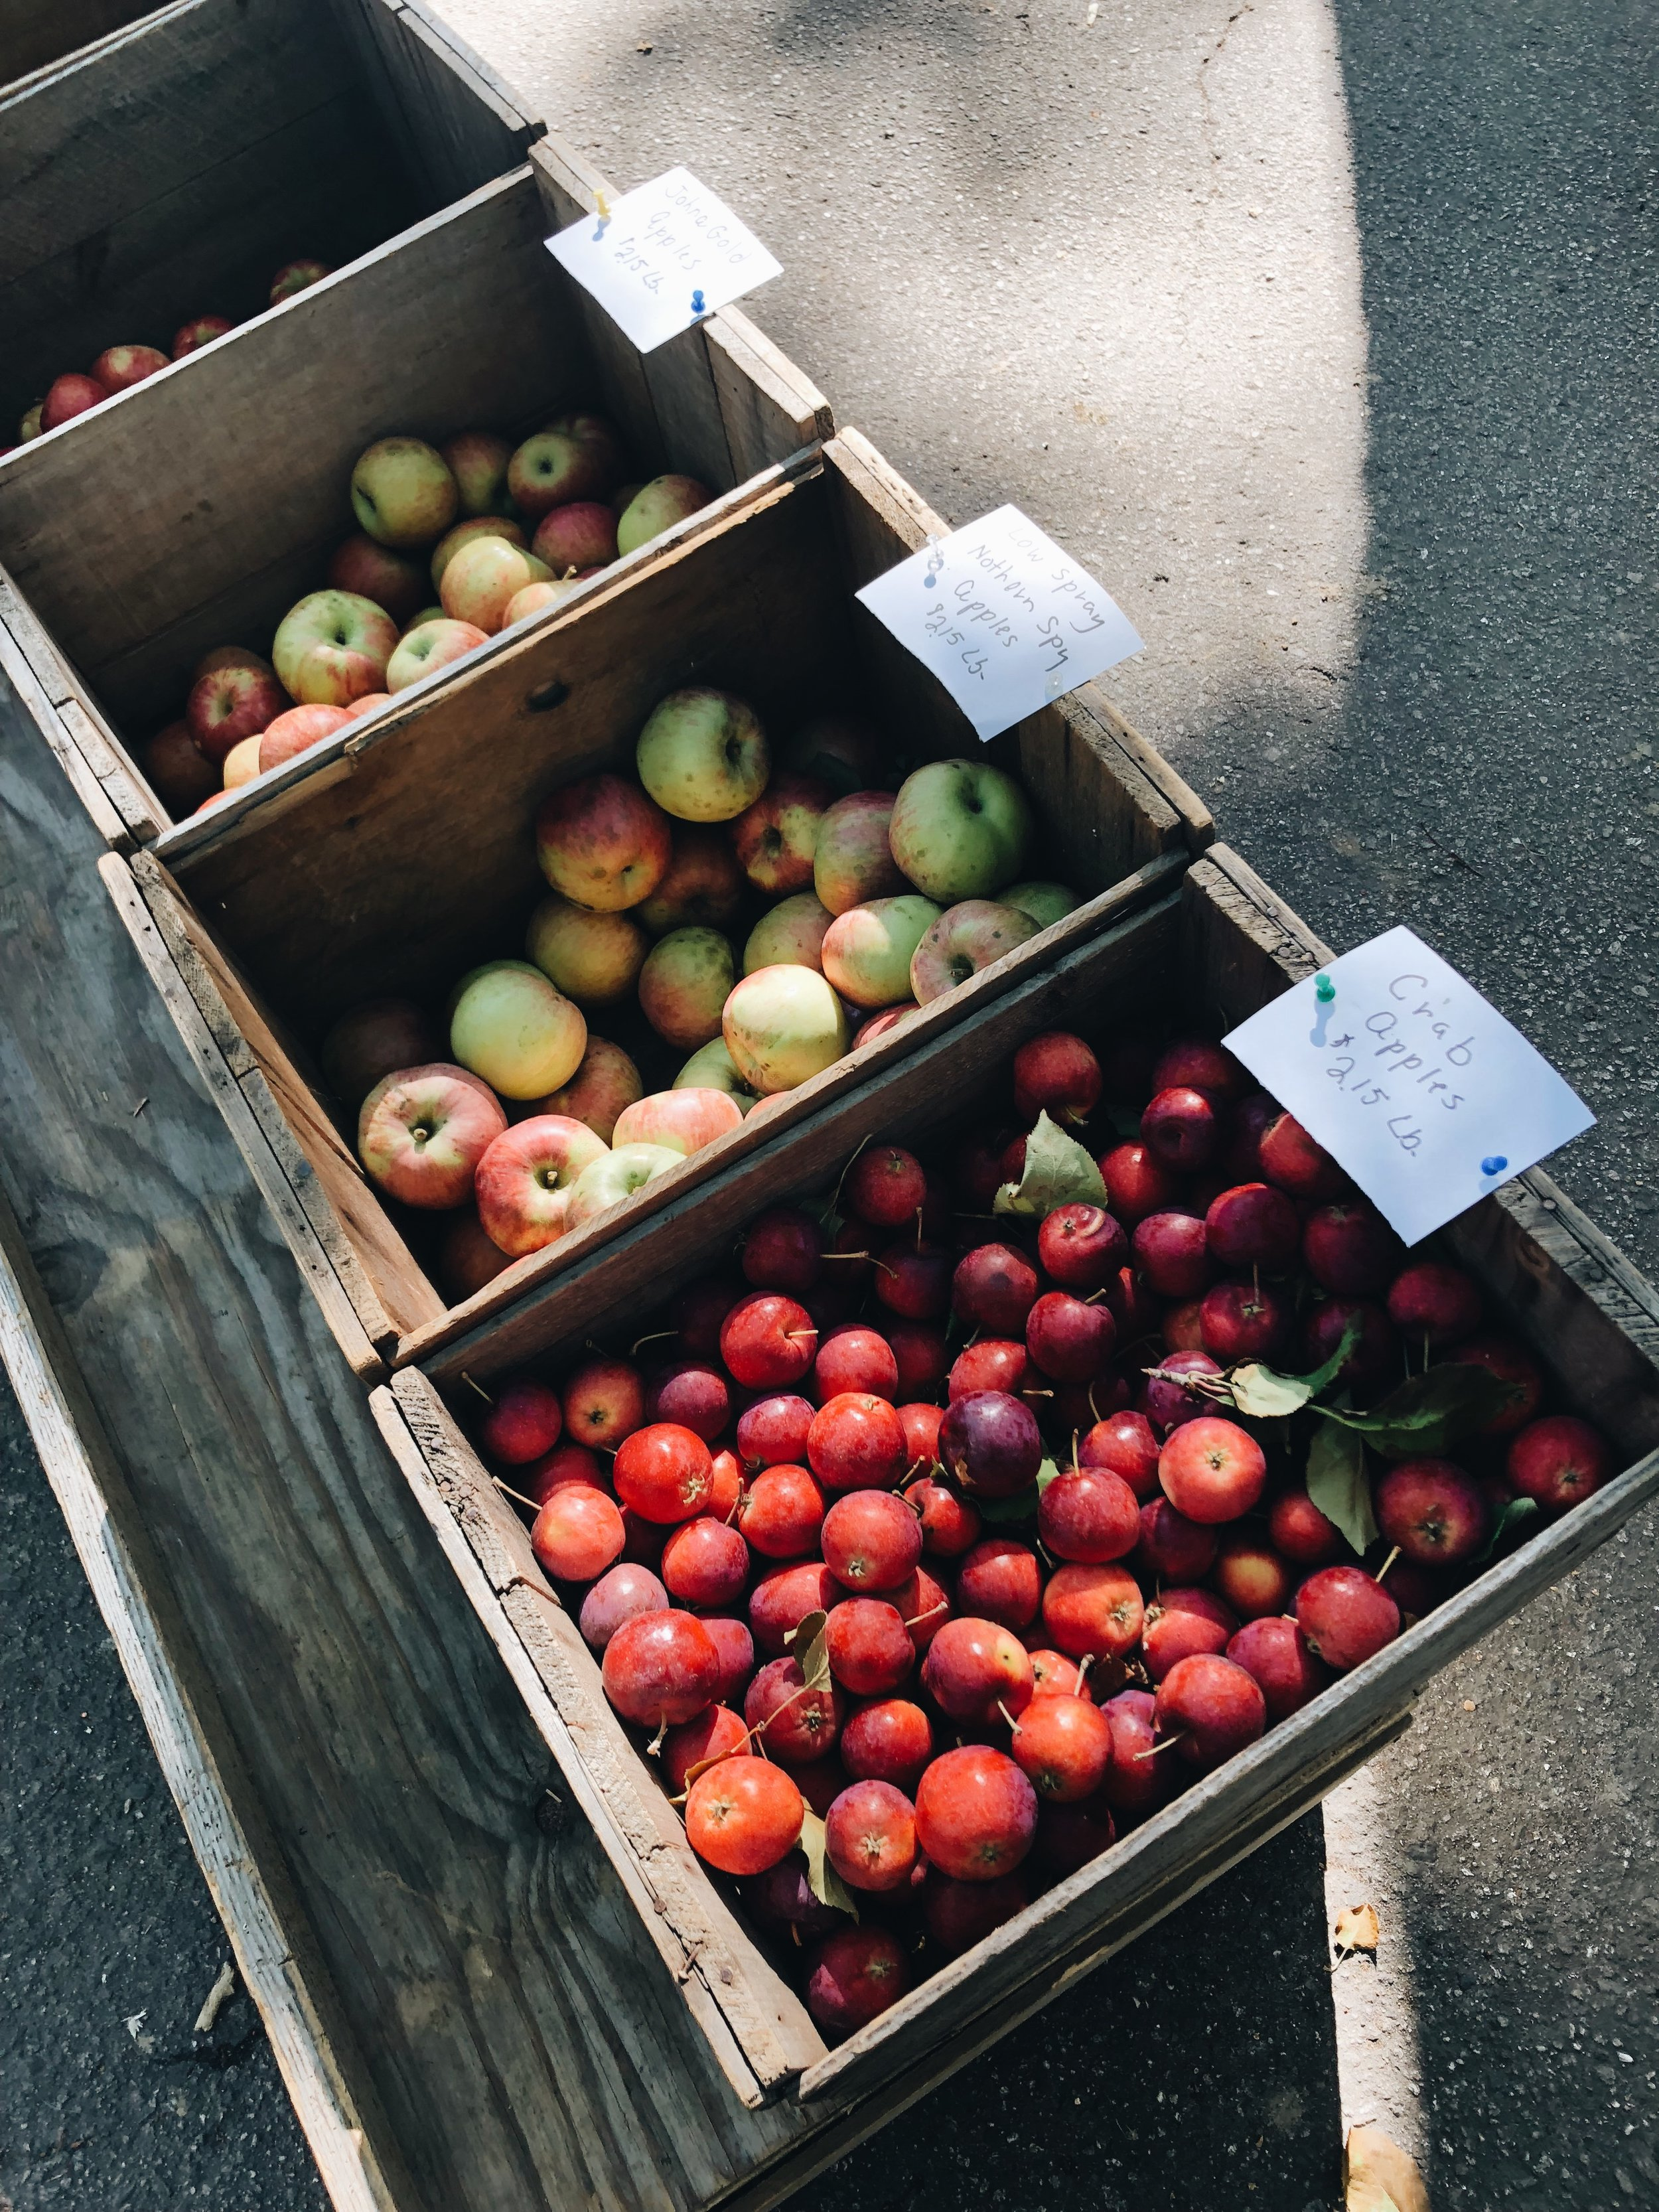 Fresh, local produce at the Deering Oaks Farmers Market